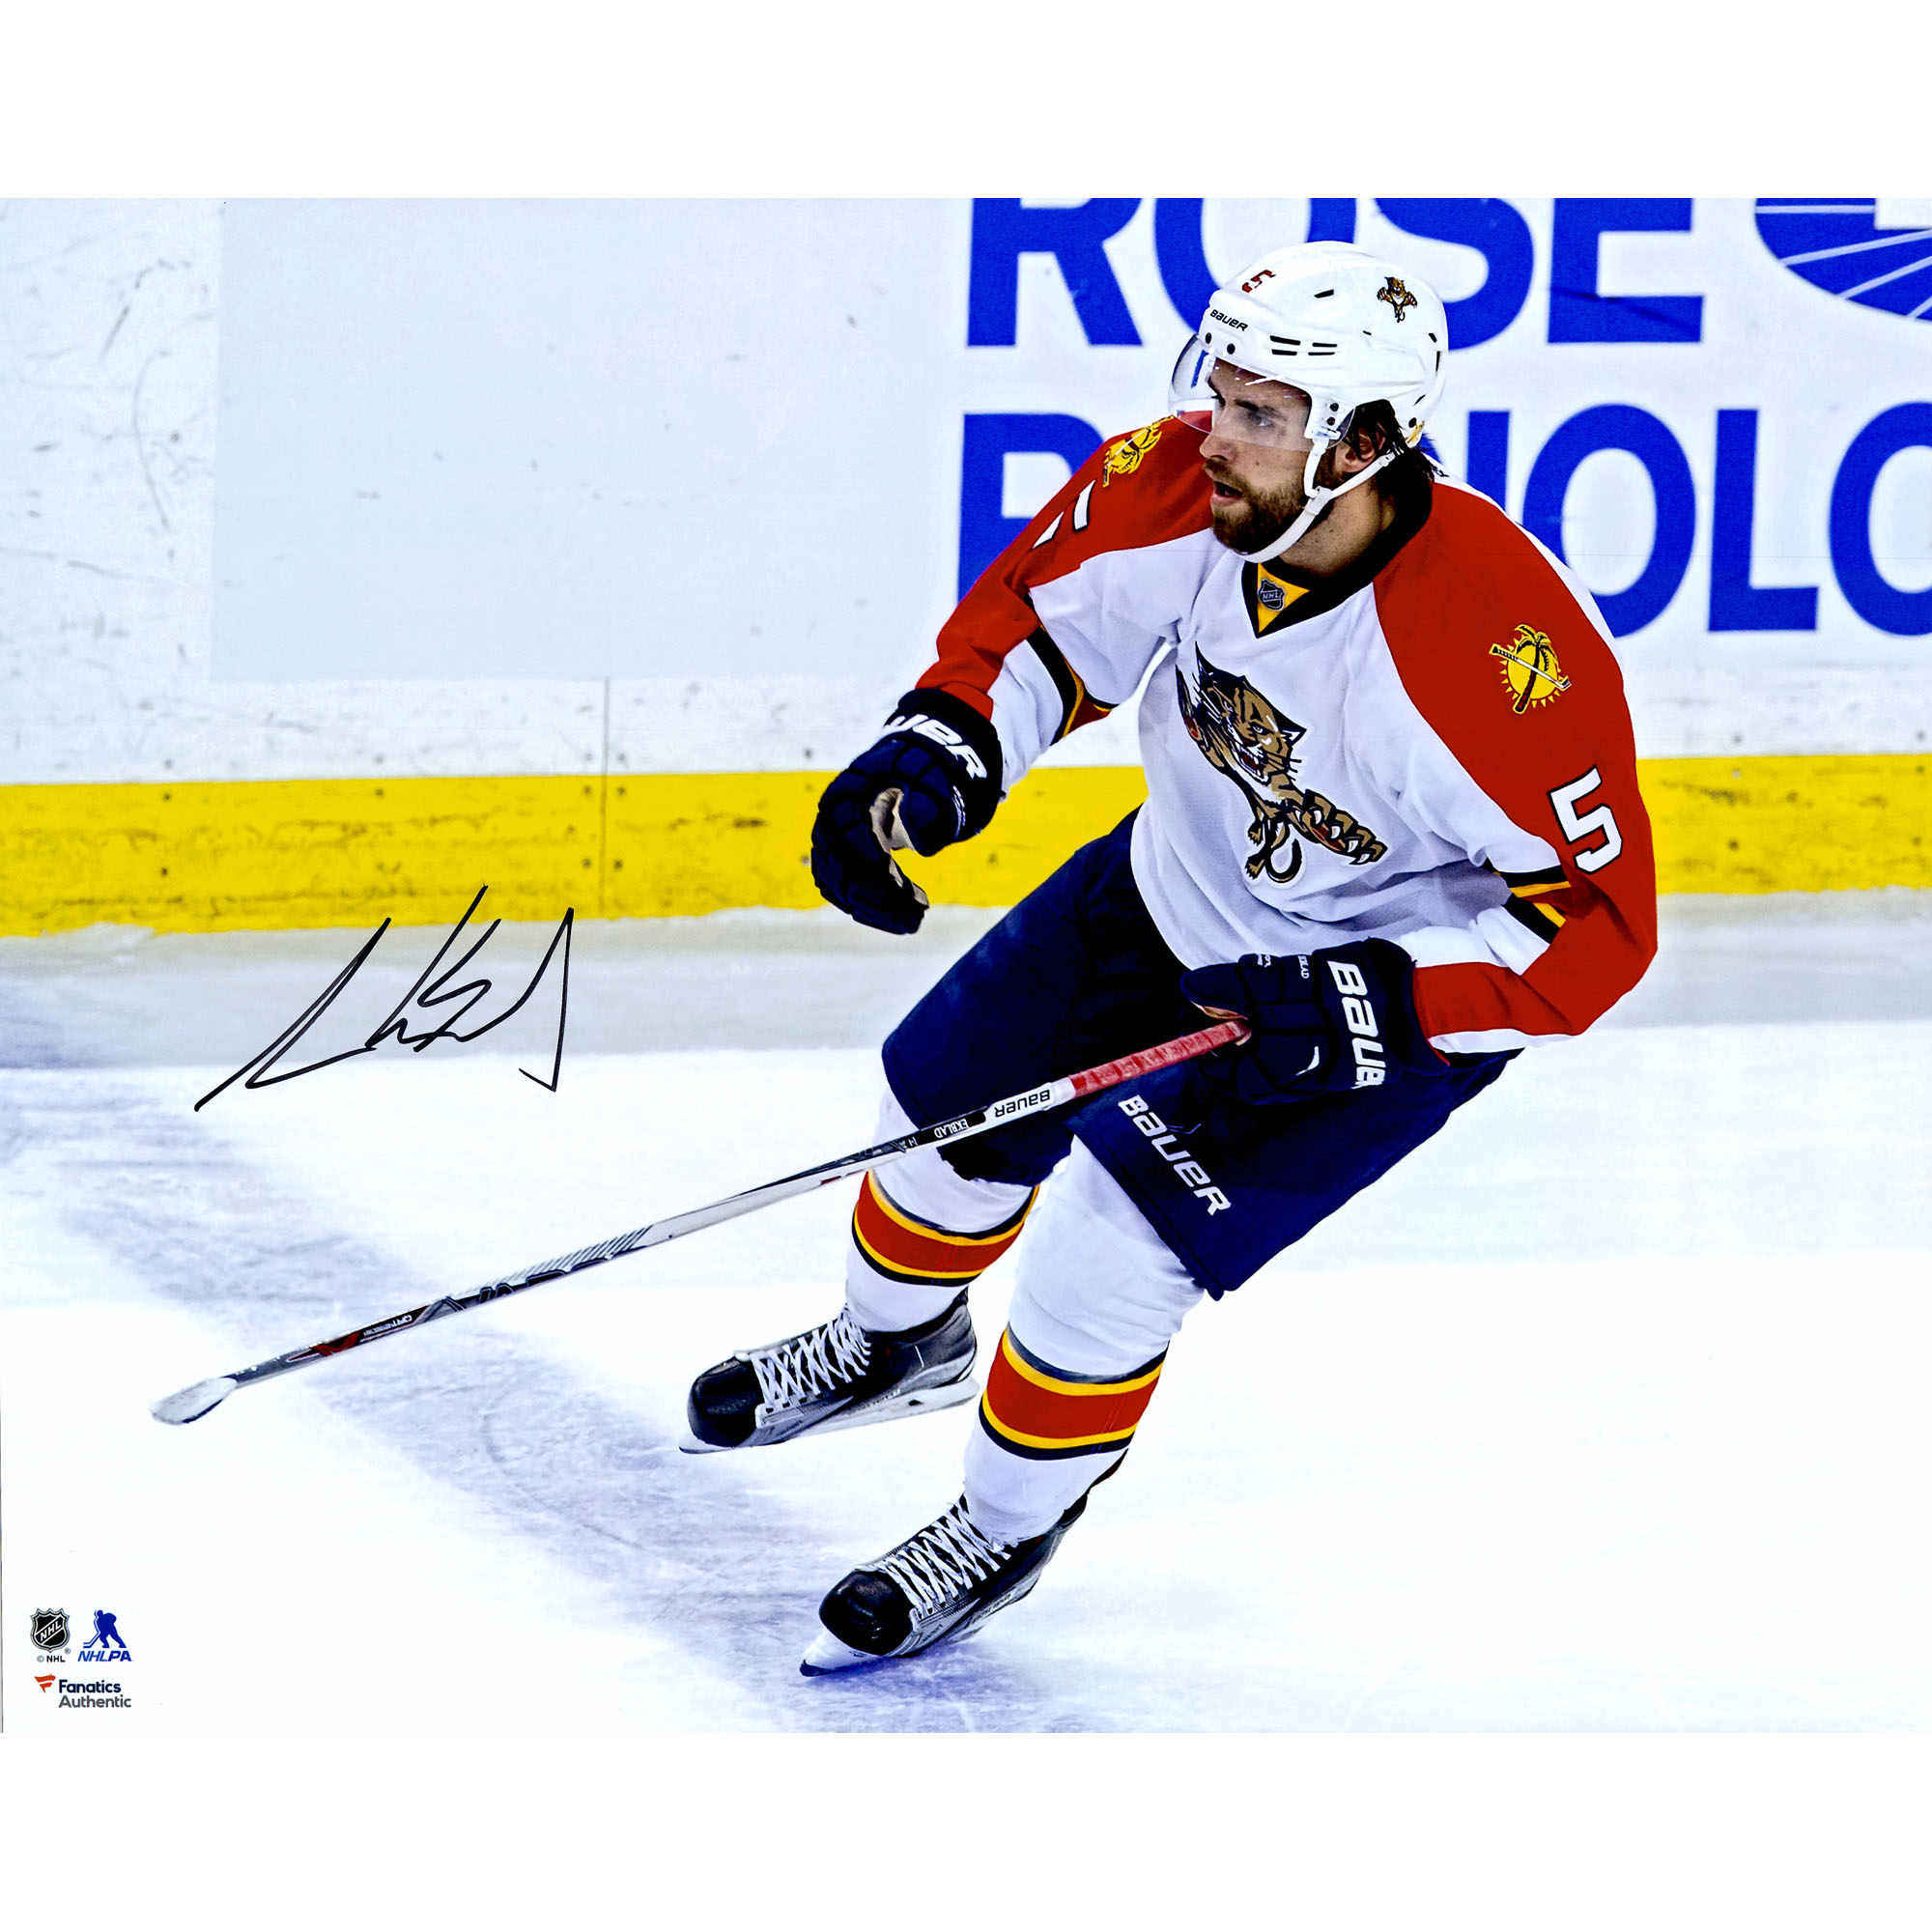 "Aaron Ekblad Florida Panthers Fanatics Authentic Autographed 16"" x 20"" White Jersey Skating Photograph No Size by Fanatics Authentic"